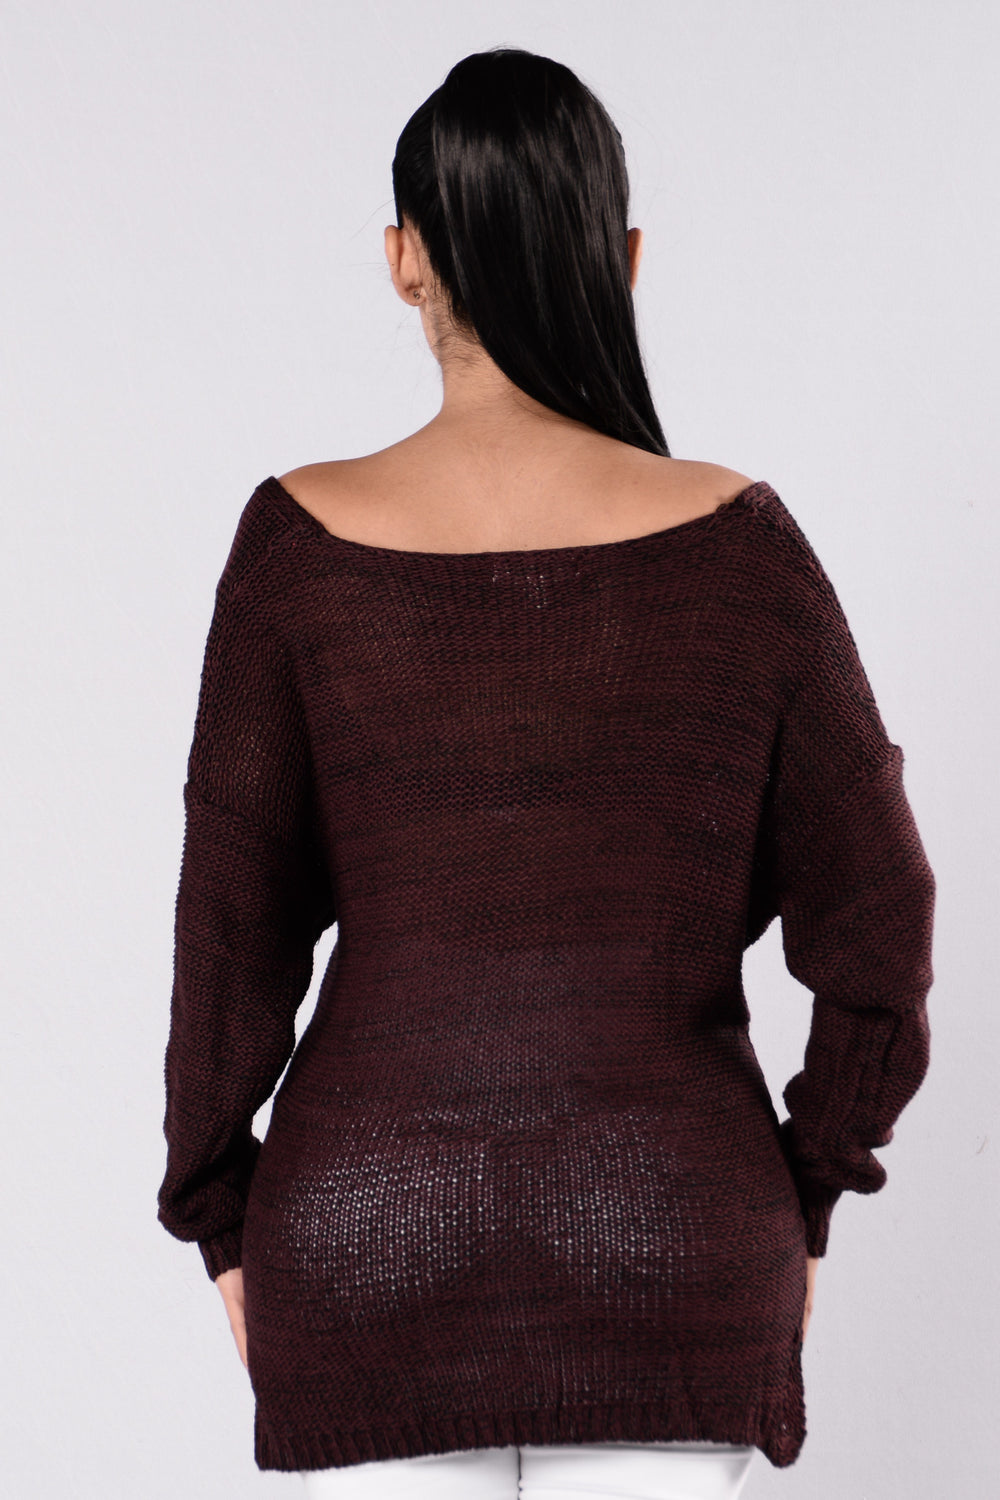 Make You Wanna Sweater - Plum